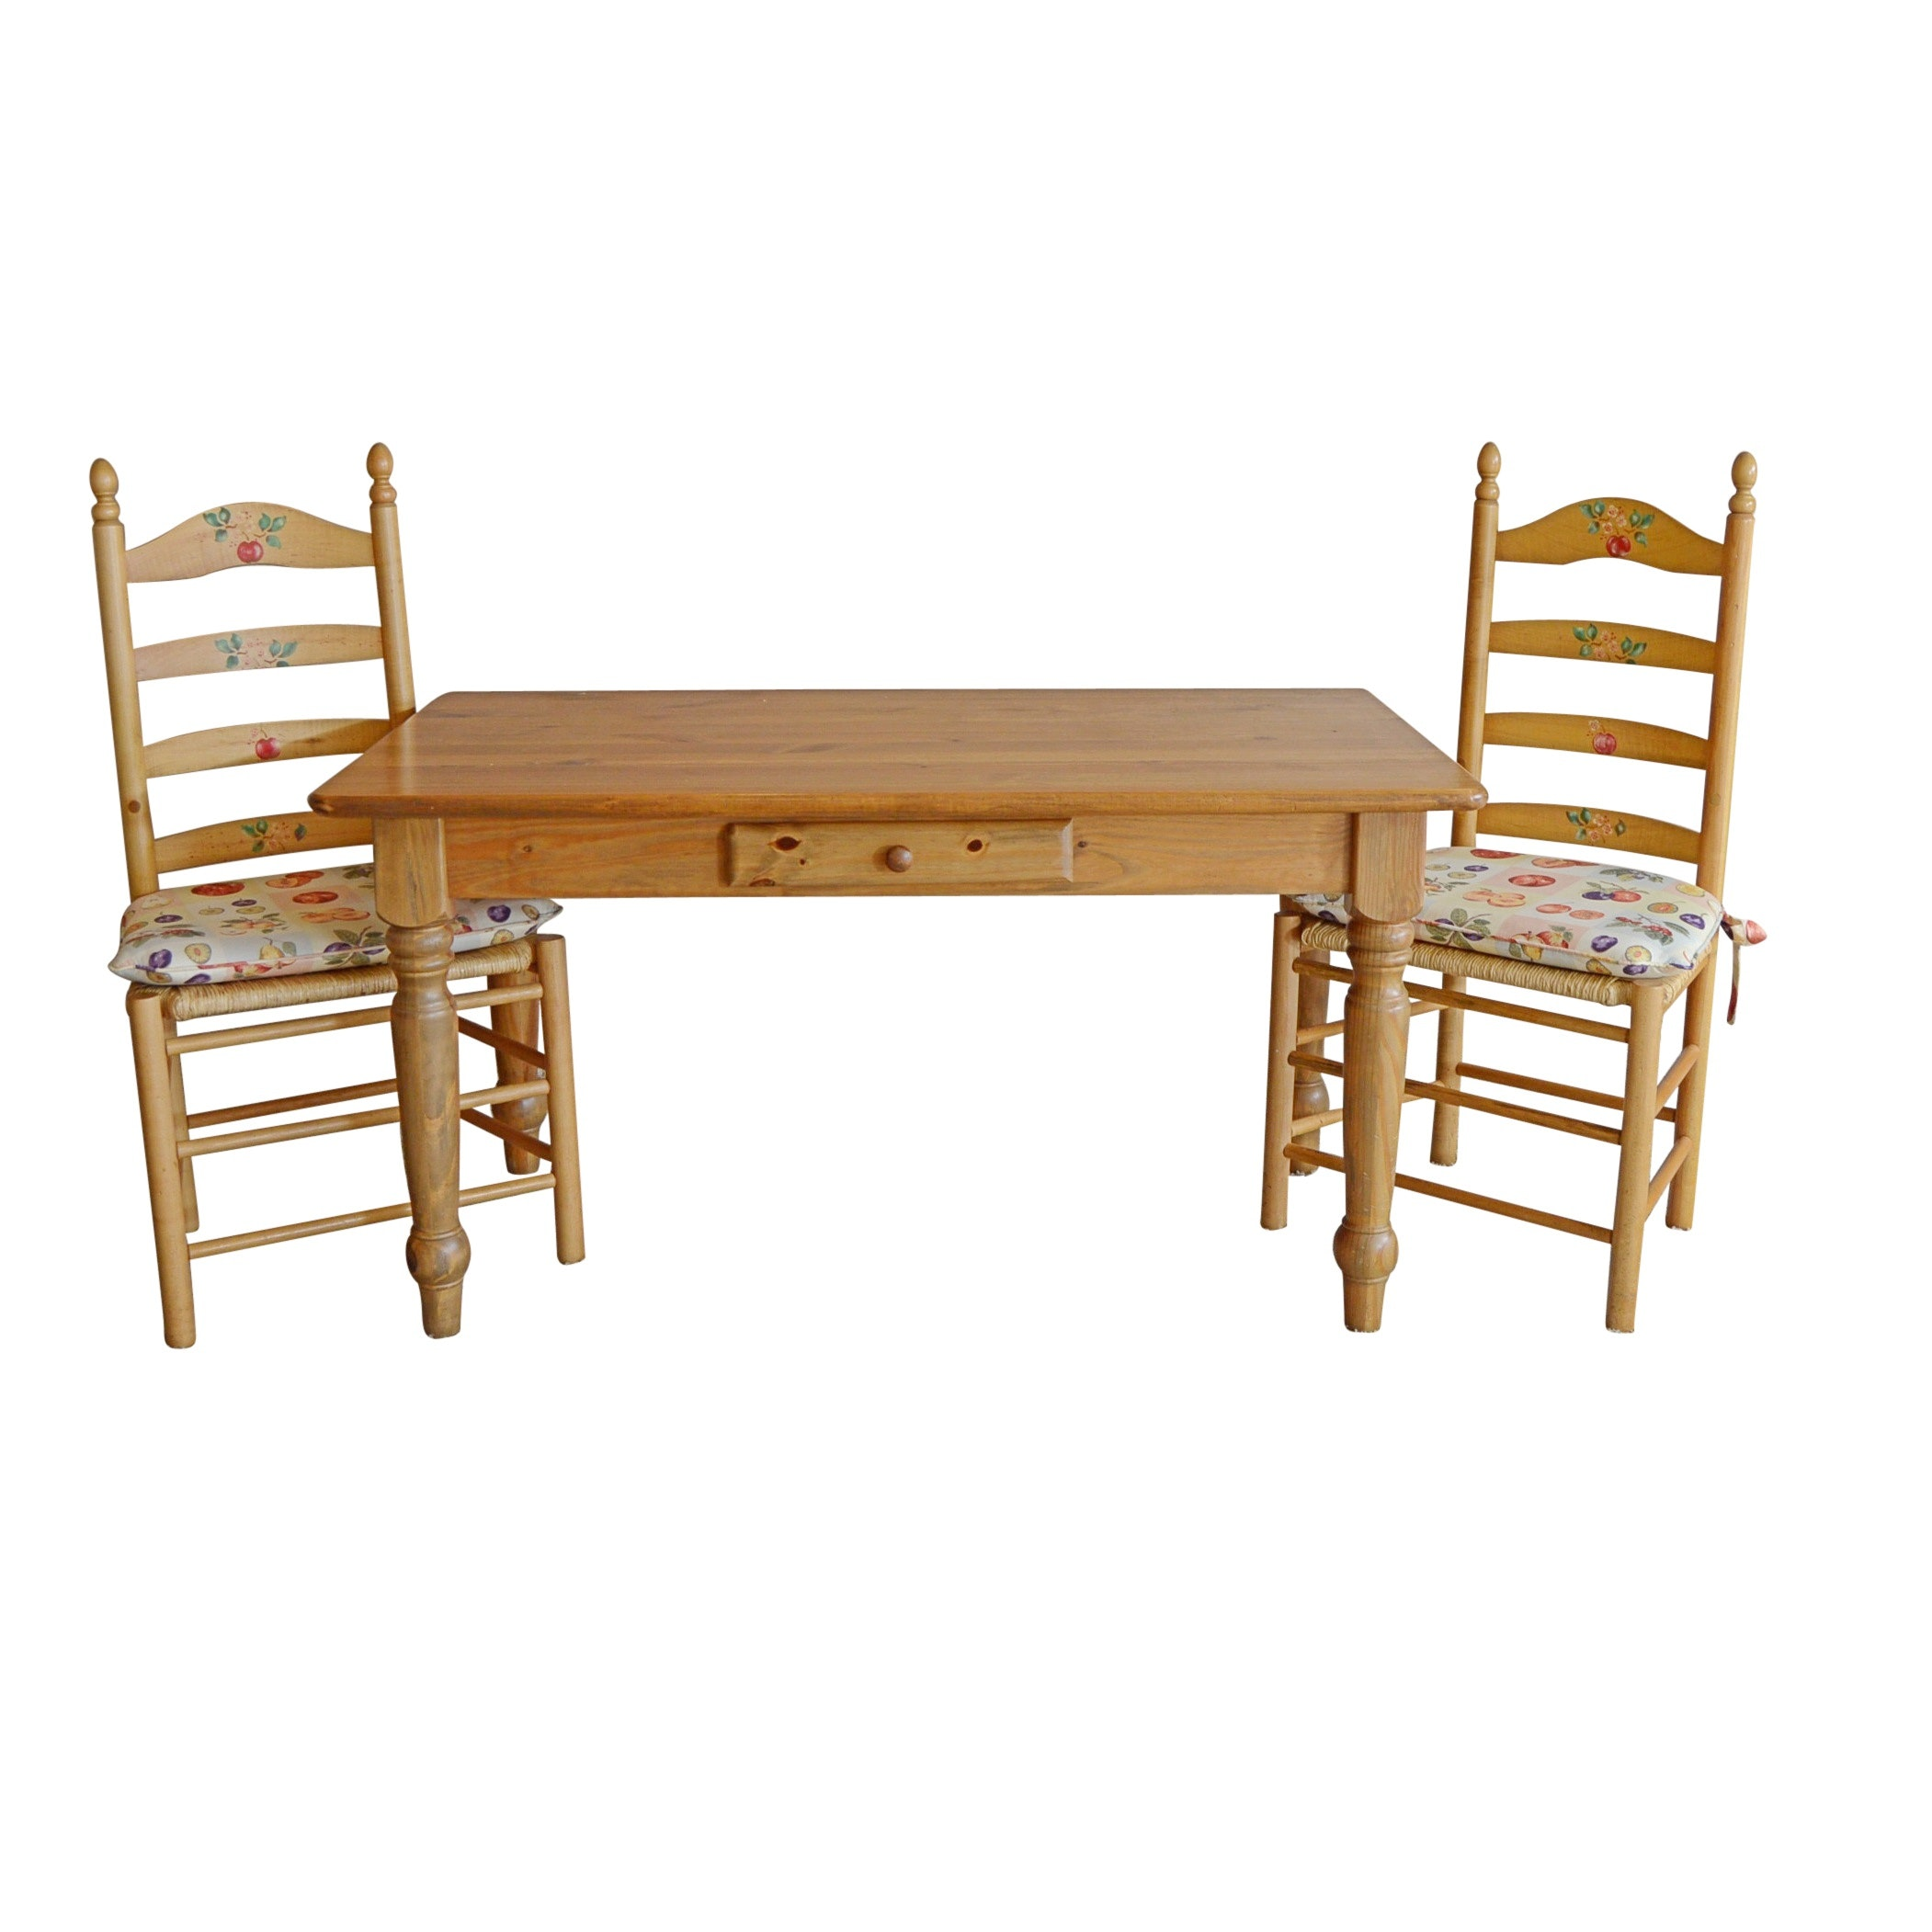 Reproduction Shaker Style Pine Dining Table with Ladderback Chairs